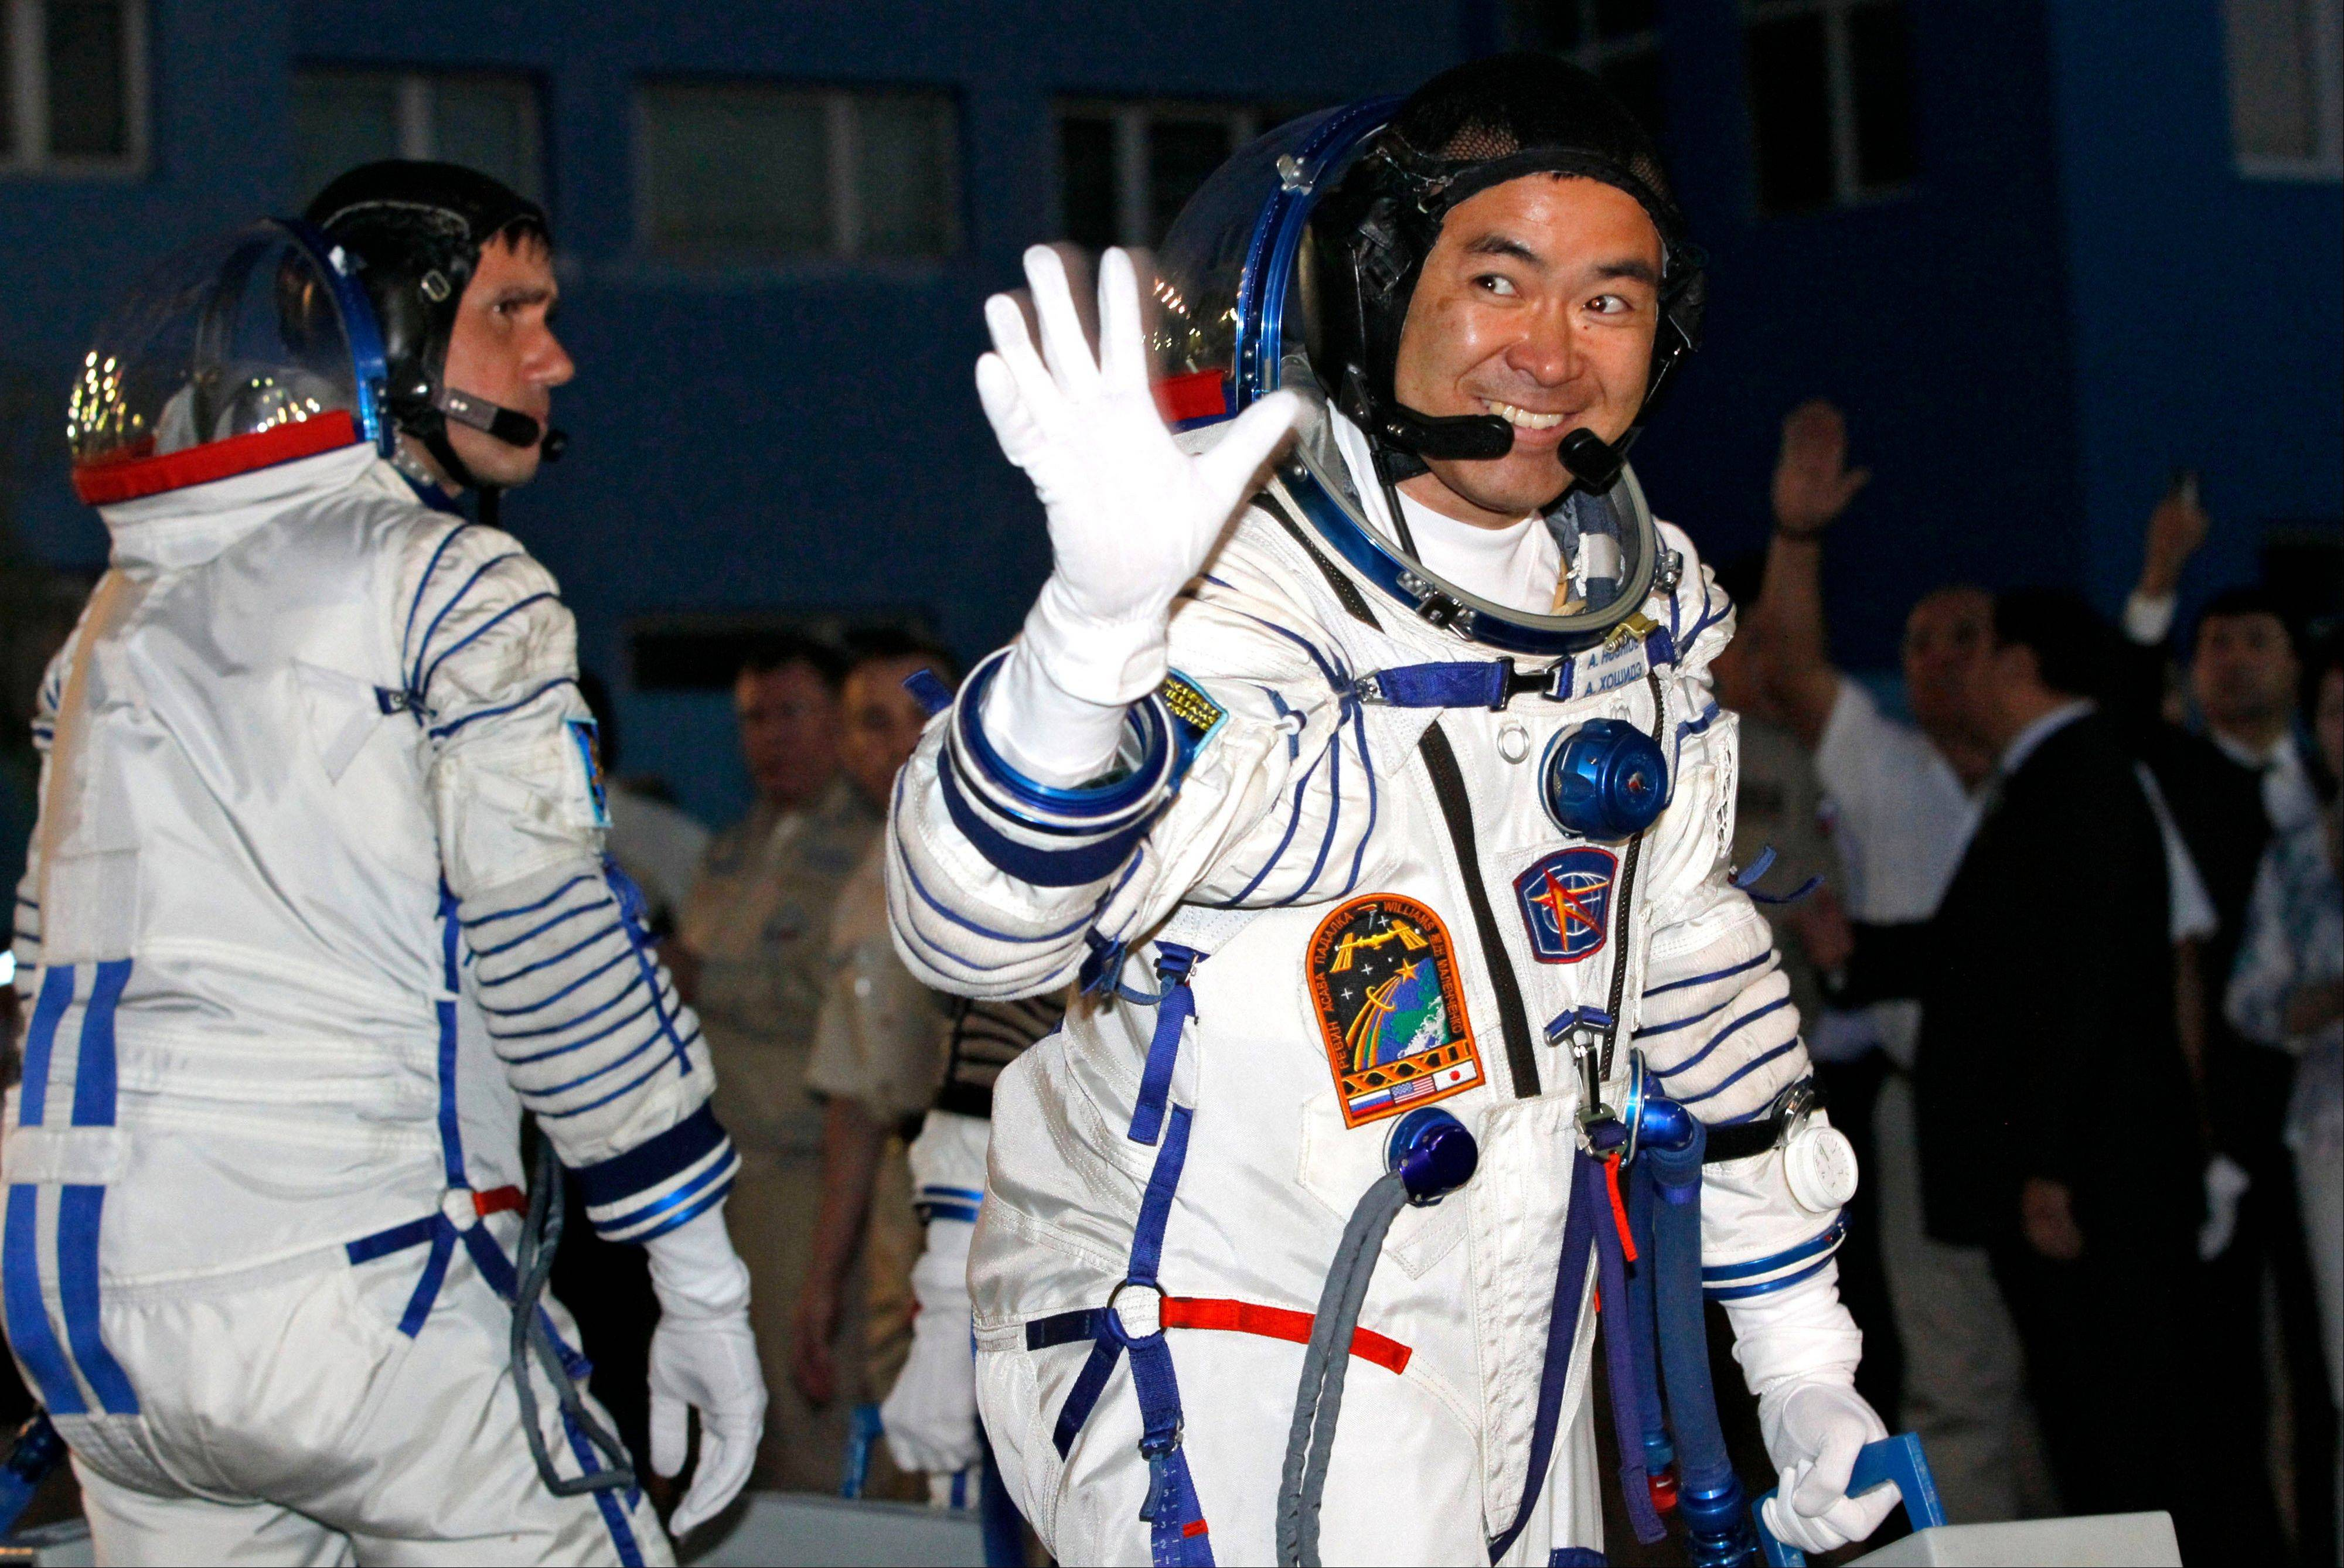 Russian cosmonaut Yuri Malenchenko, left, and Japanese astronaut Akihiko Hoshide, crew members of the mission to the International Space Station, ISS, gesture prior the launch of Soyuz-FG rocket Sunday at the Russian leased Baikonur cosmodrome, Kazakhstan.